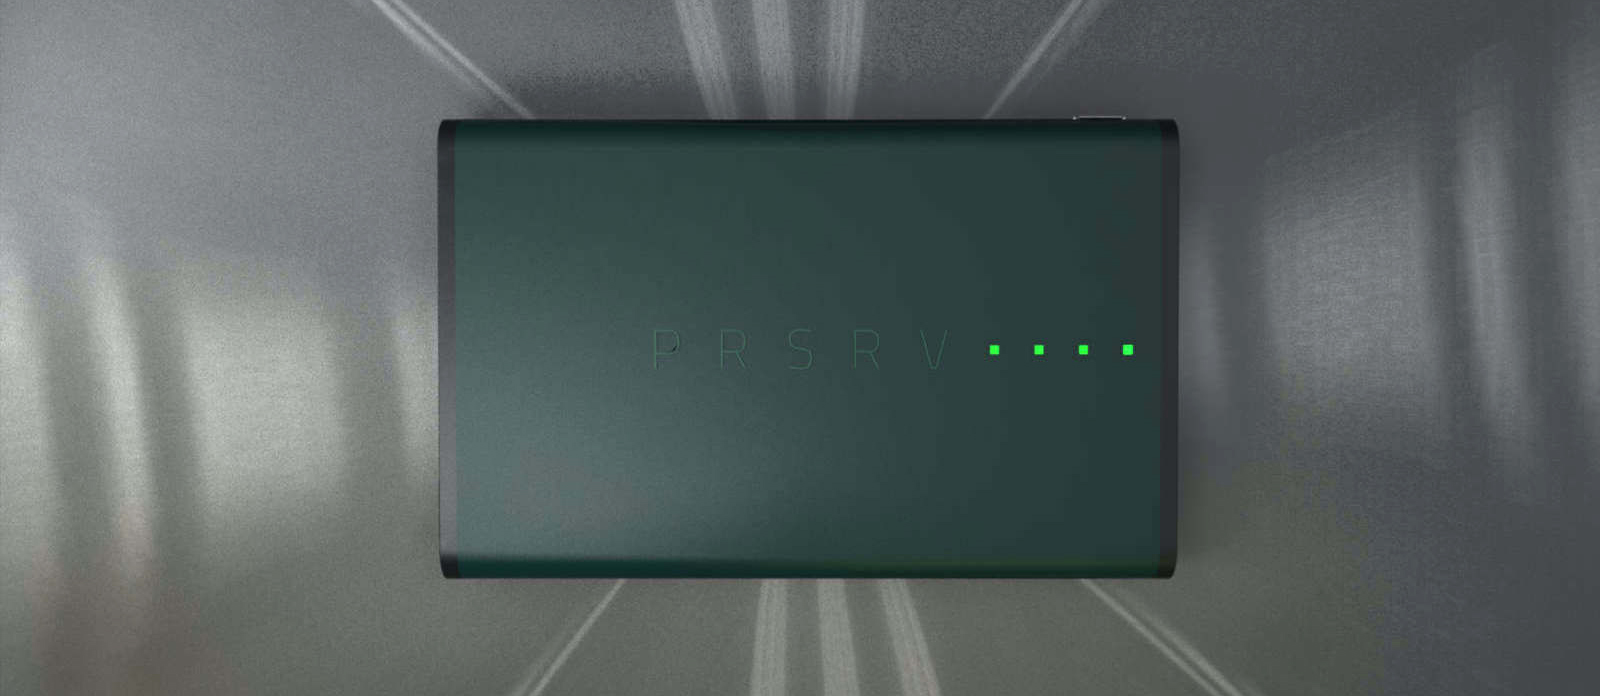 PRSRV: The Energy Efficient Power Bank